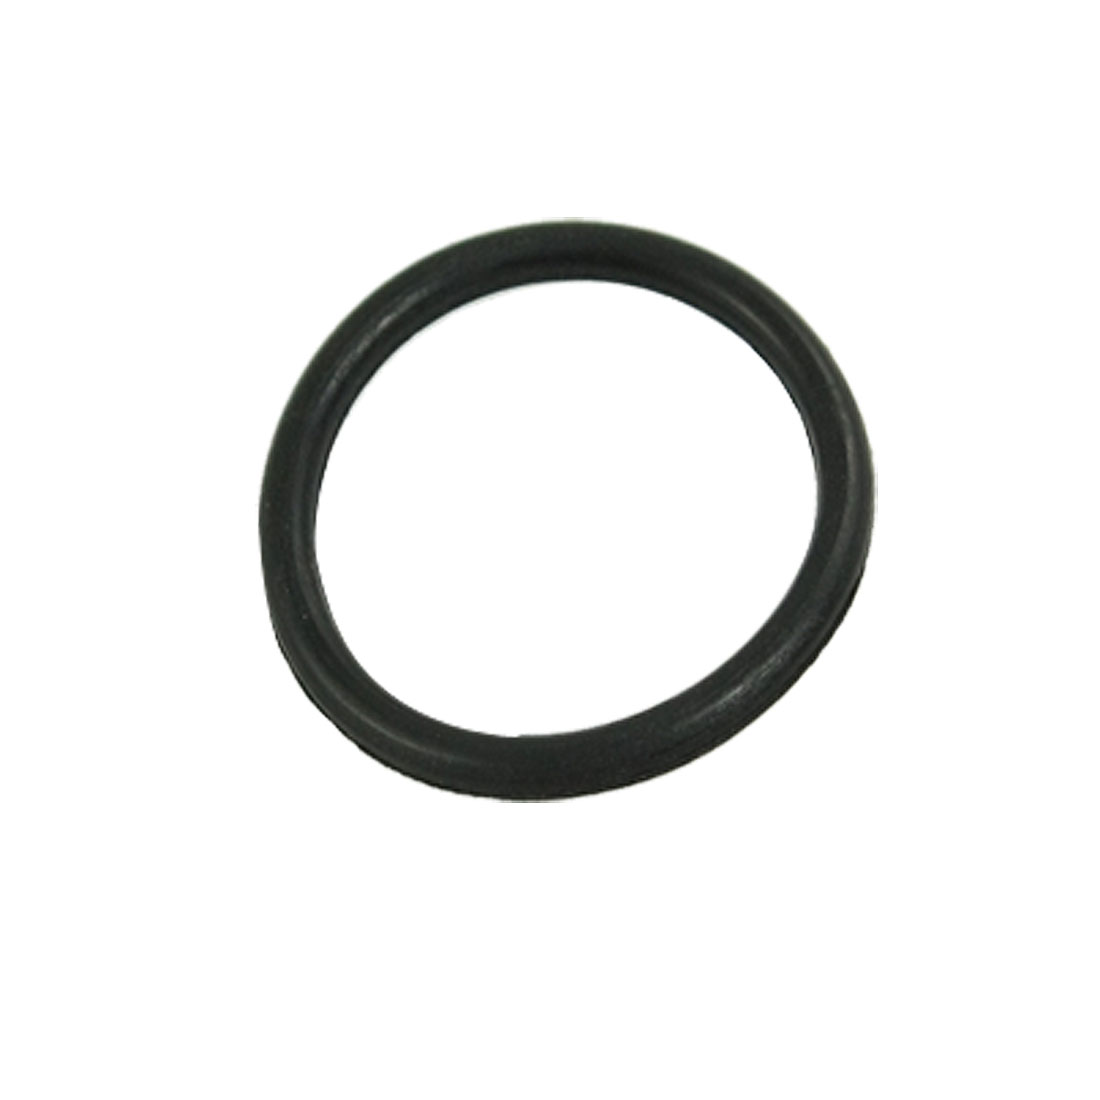 5 Pcs 26mm x 2.4mm Mechanical Rubber O Ring Oil Seal Gaskets